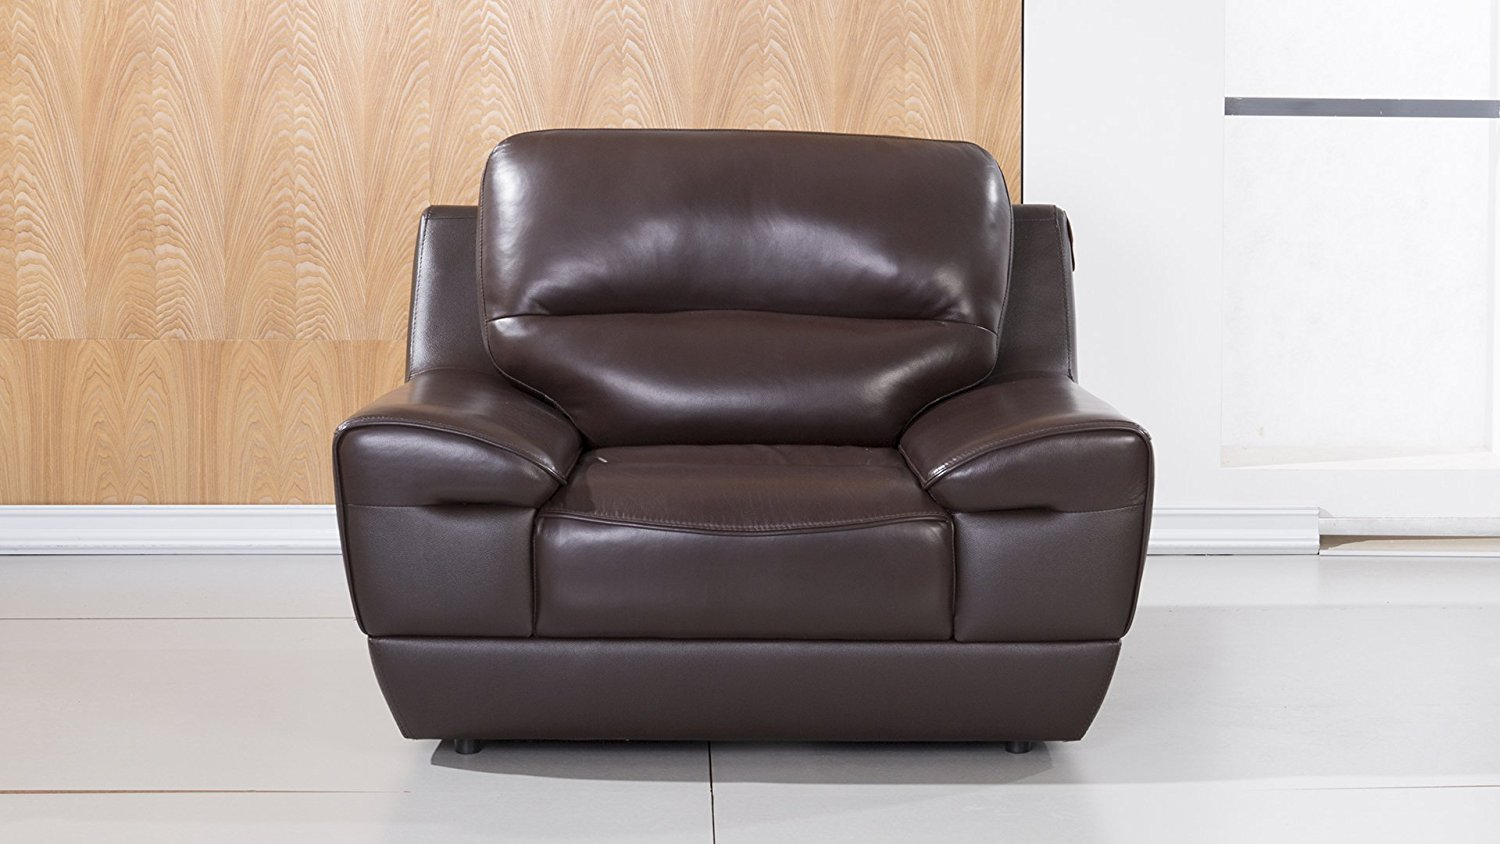 American Eagle Furniture Stratton Collection Italian Grain Leather Living Room Armchair with Pillow Top Armrests, Dark Brown